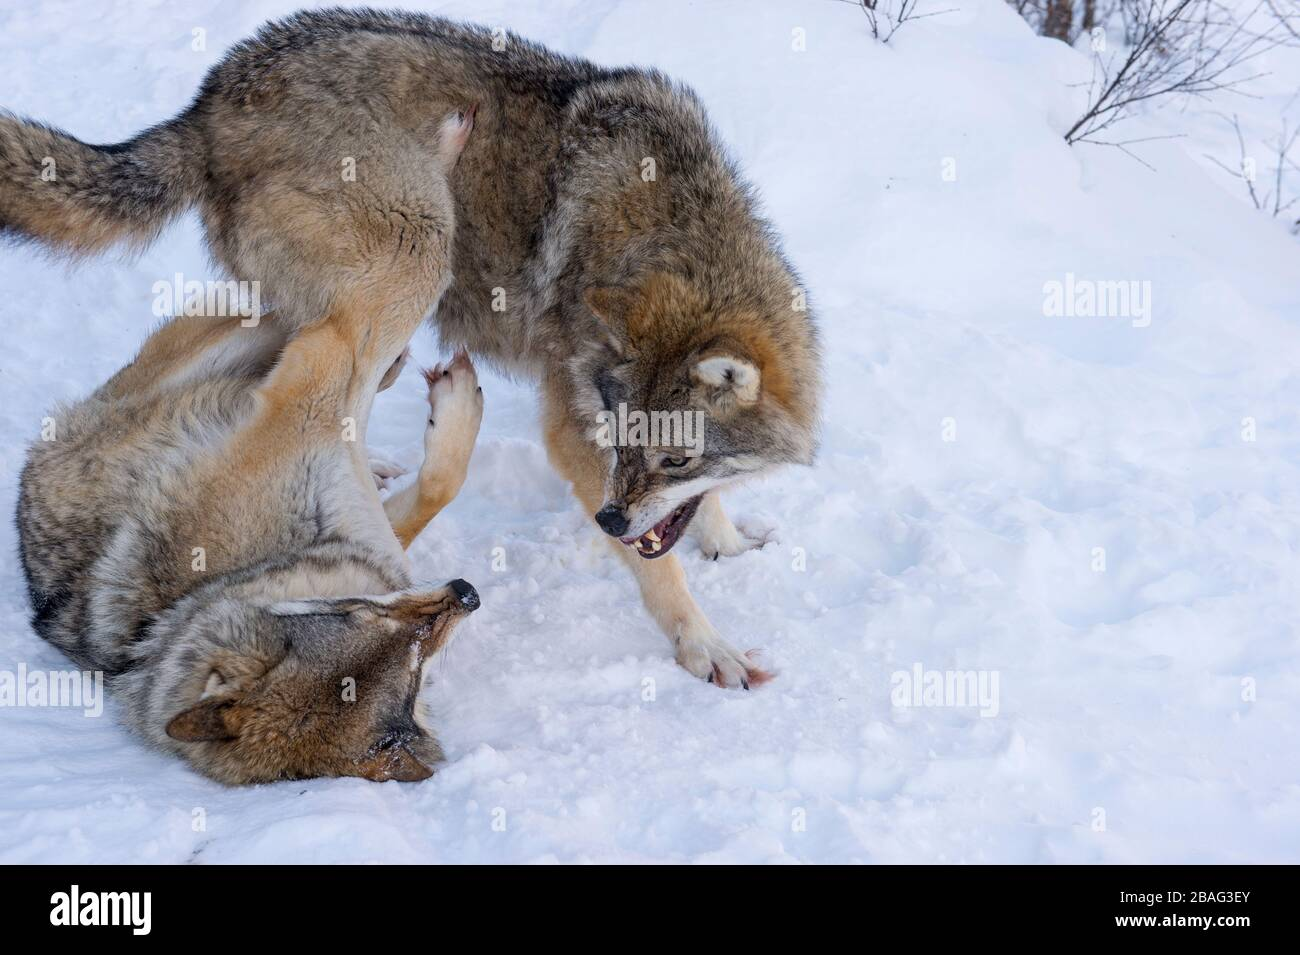 Gray Wolves Canis Lupus In The Snow Fighting With Each Other At A Wildlife Park In Northern Norway Stock Photo Alamy